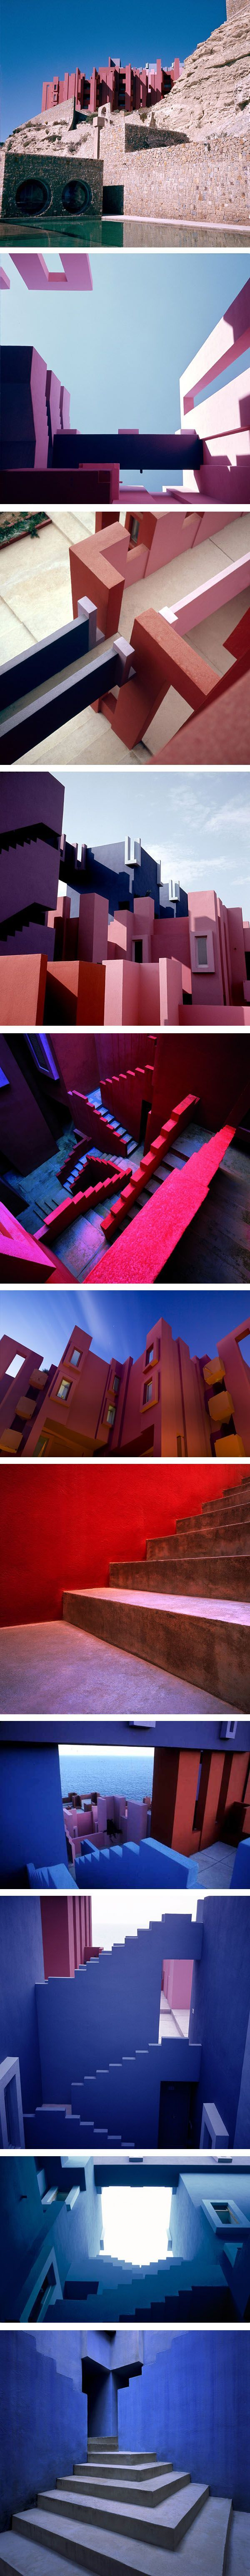 """The Red Wall"" (La Muralla Roja) 50 apartment building by #architect Ricardo Bofill in Spain.....dated 1973"